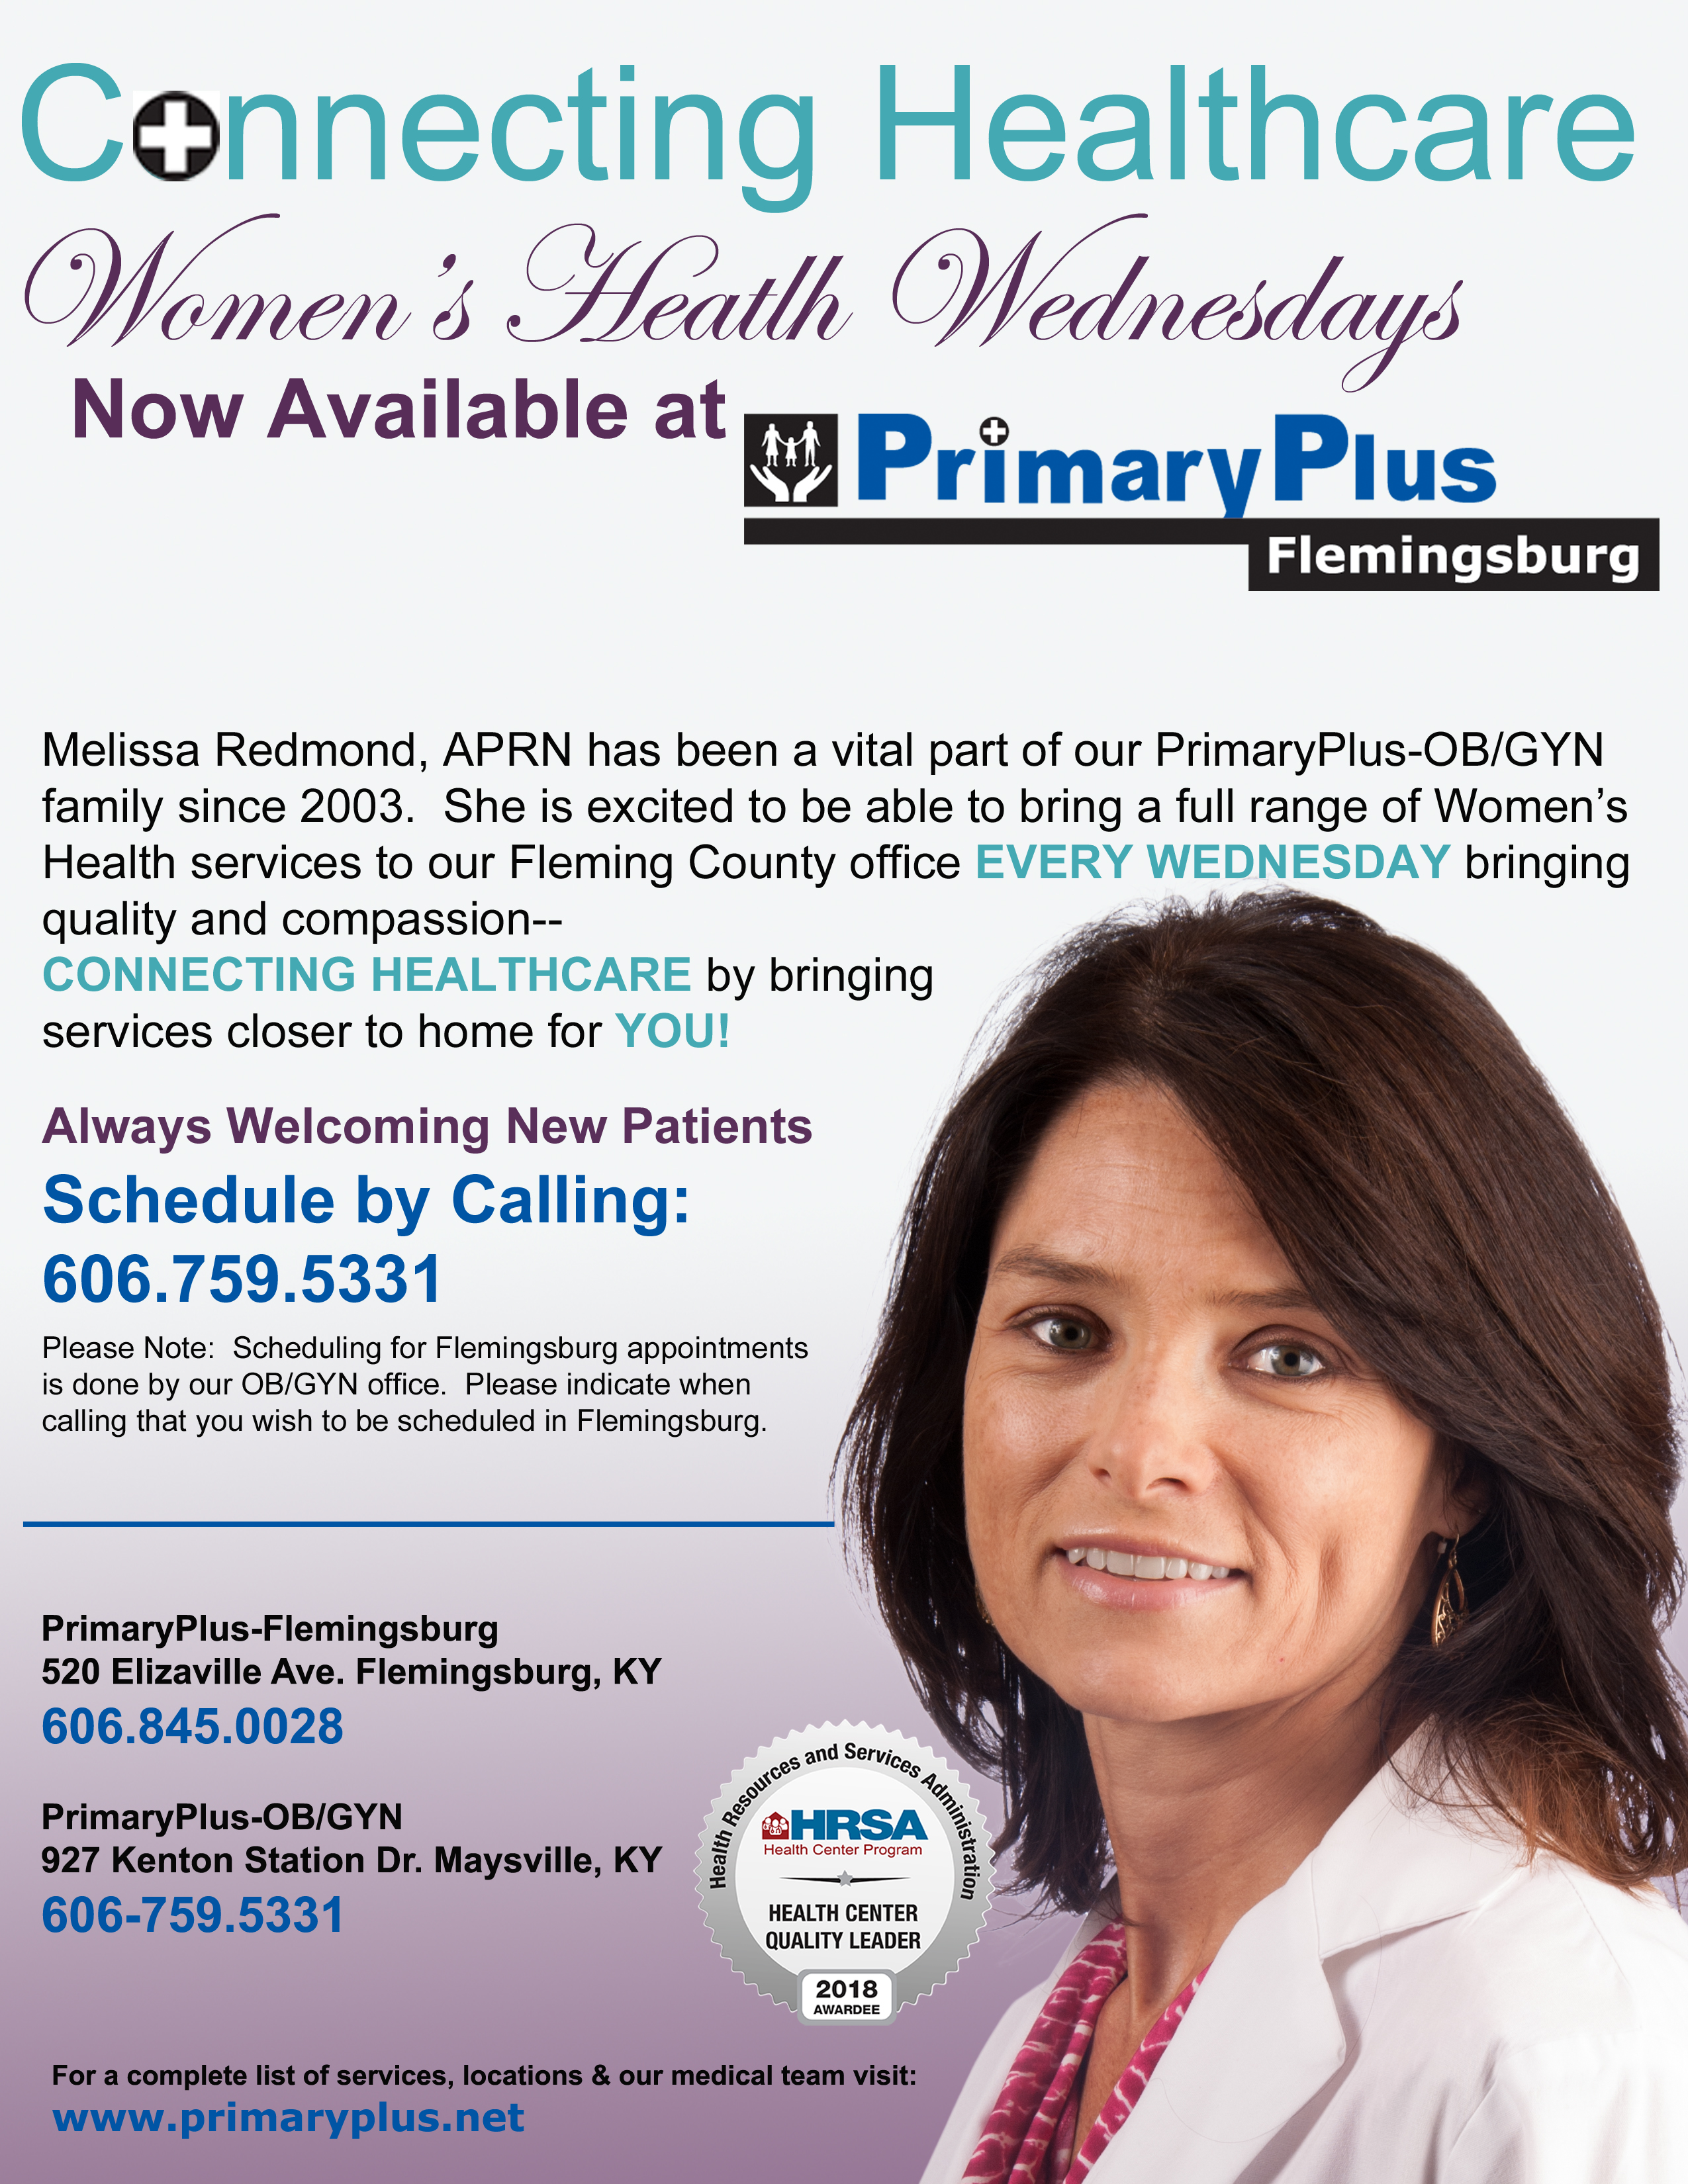 PrimaryPlus-Flemingsburg Now offering Women's Health Wednesdays News